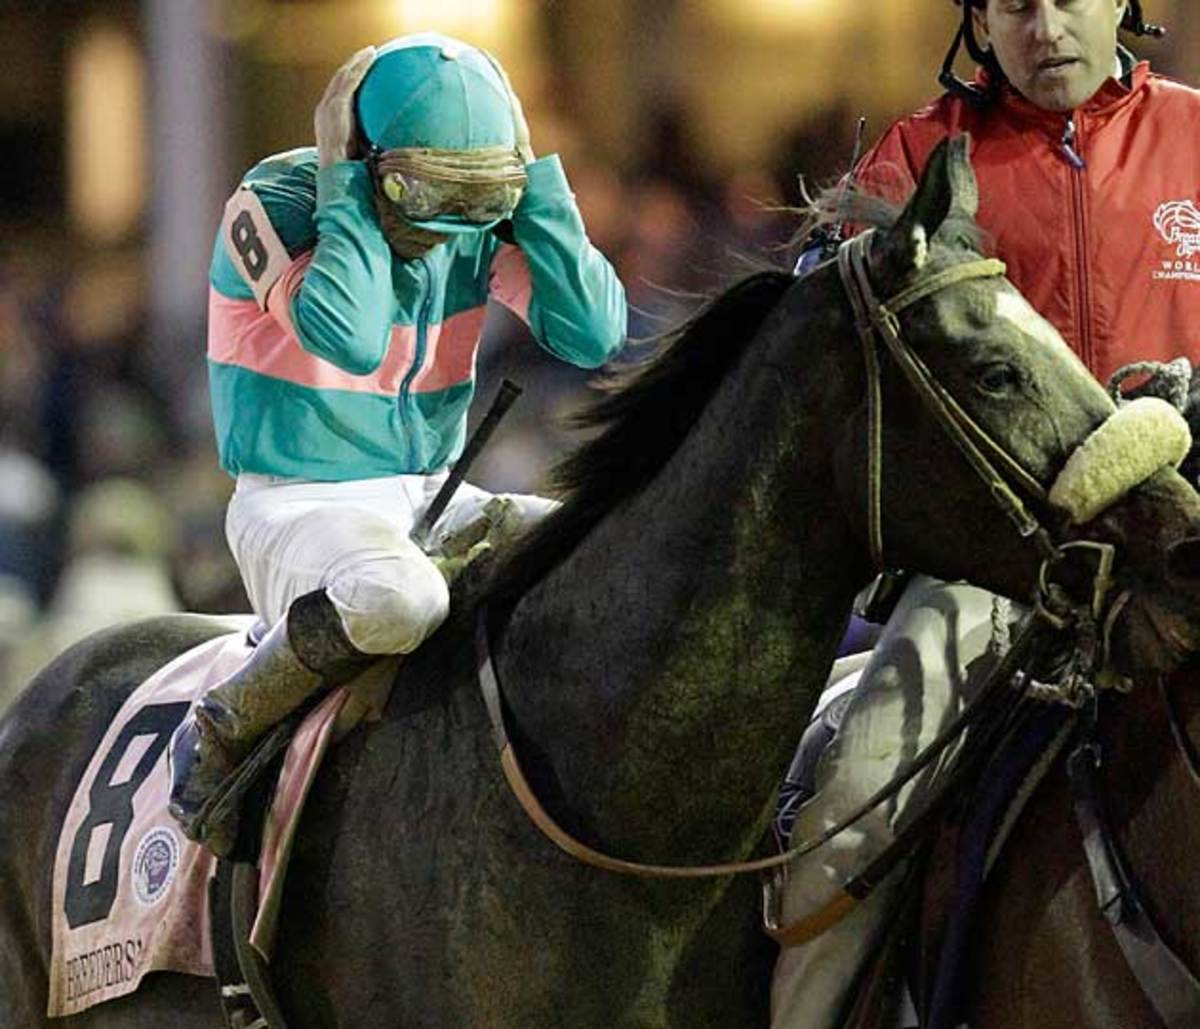 Smith was crushed after Zenyatta lost by a nose in the Breeders' Cup Classic at Churchill Downs in 2010.